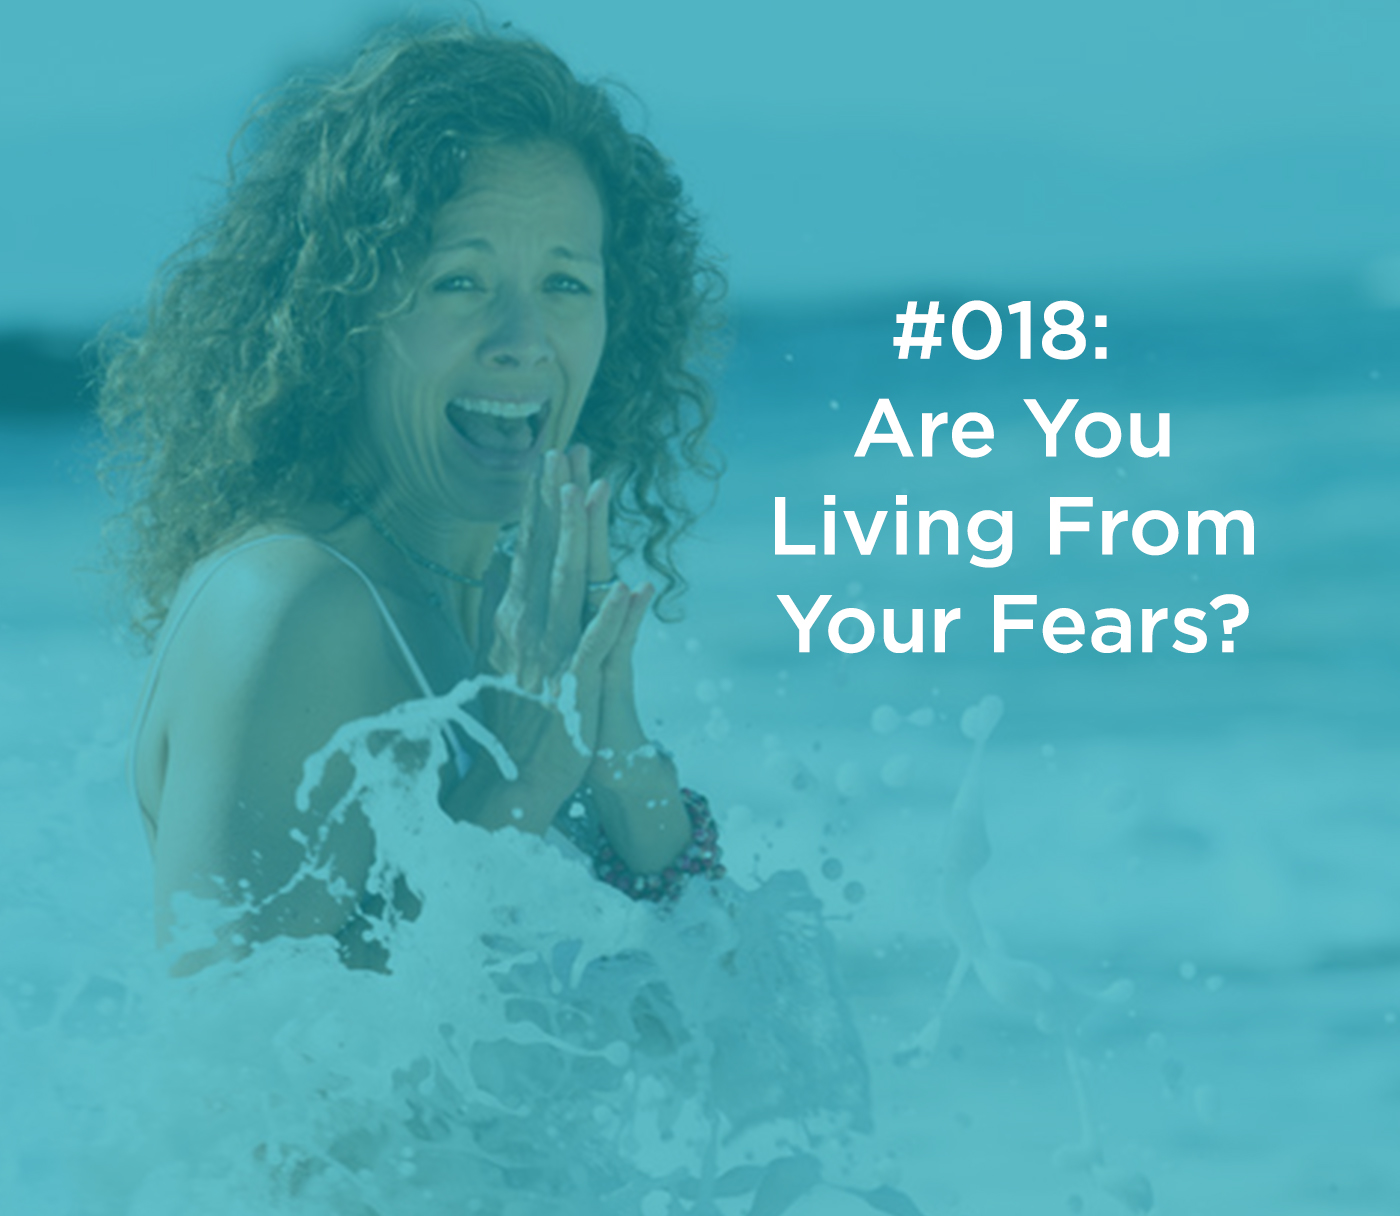 Are You Living From Your Fears?